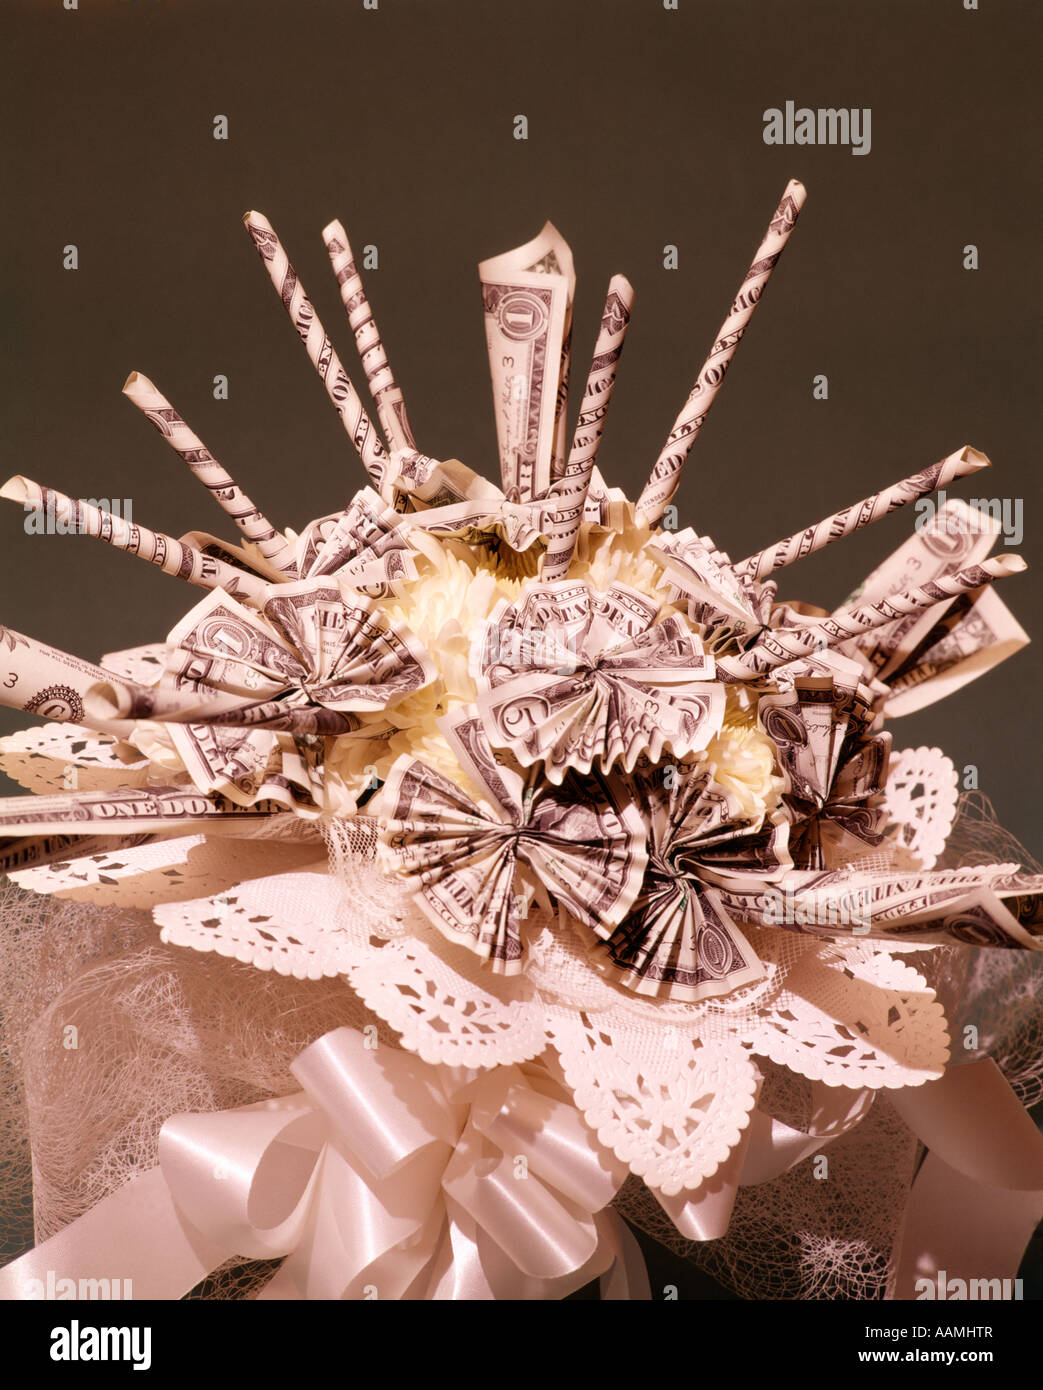 Money For Wedding Gift : Photo - BRIDAL BOUQUET MADE UP OF MONEY MARRIAGE FINANCES WEDDING GIFT ...